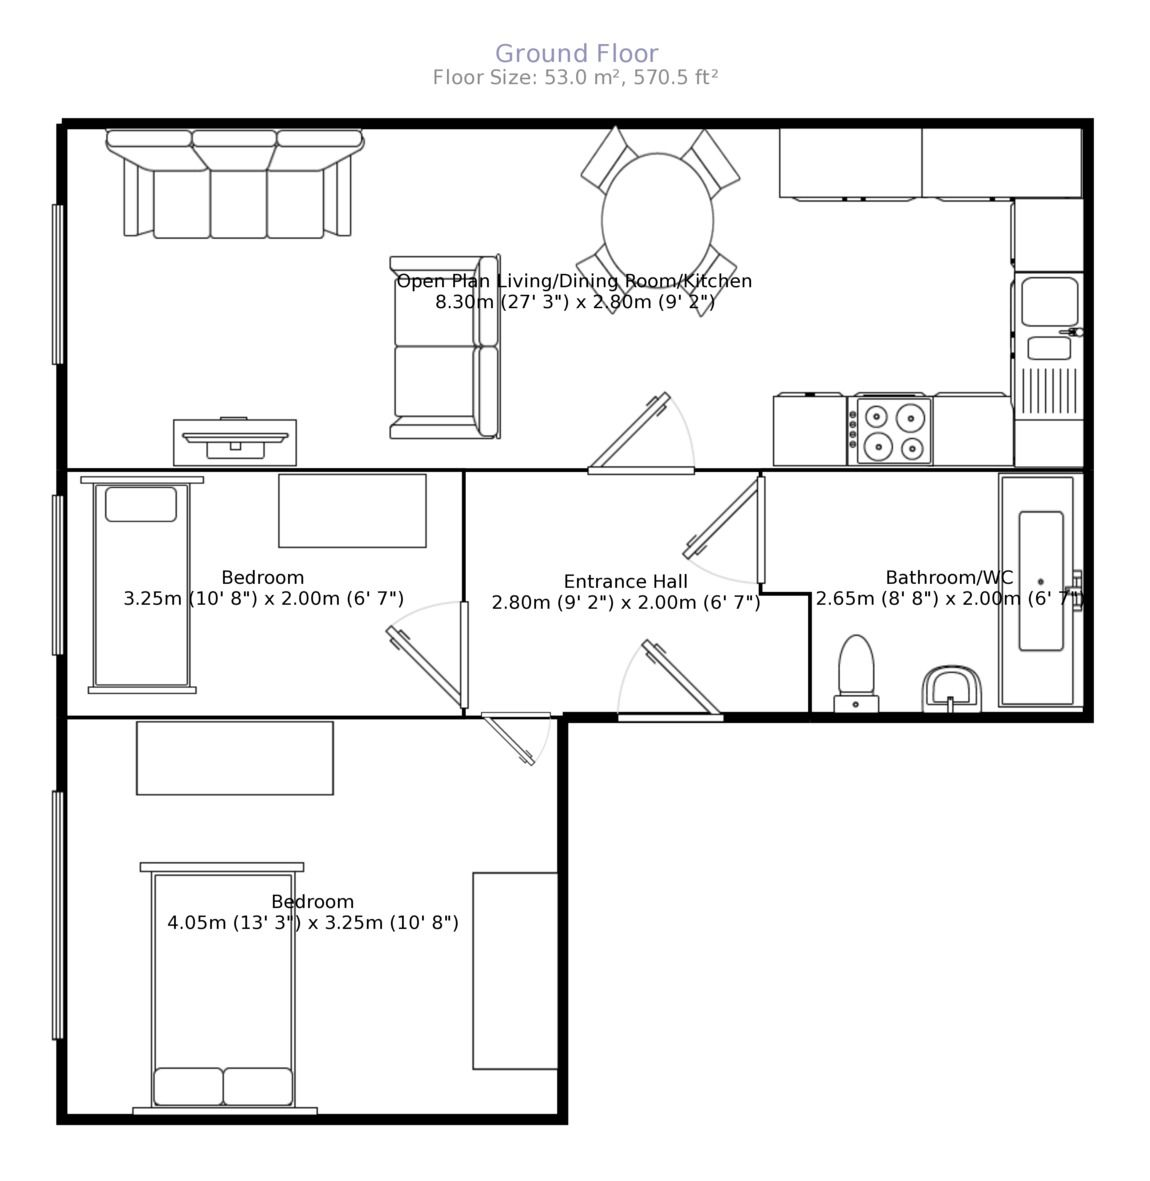 Bullring Floor Plan Property For Sale In Edgbaston Birmingham Your Move